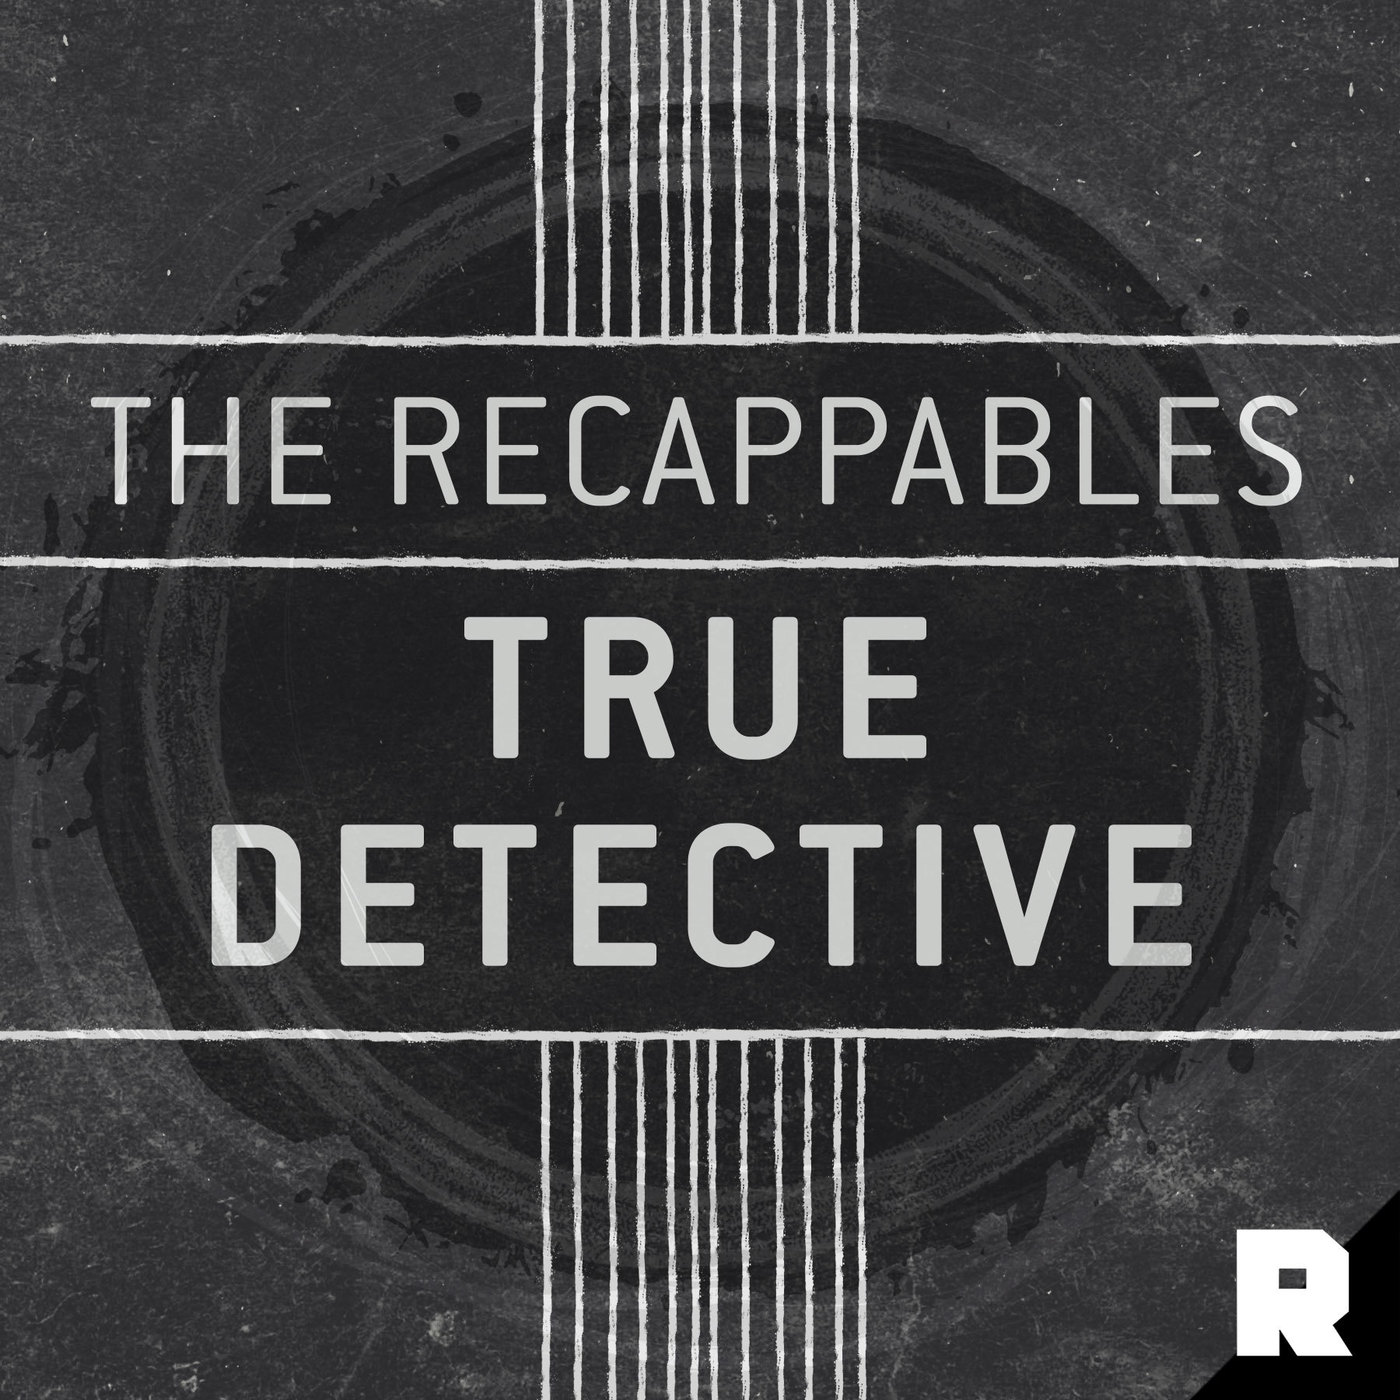 Where Is Julie Purcell? | The Recappables: True Detective (Ep. 3)